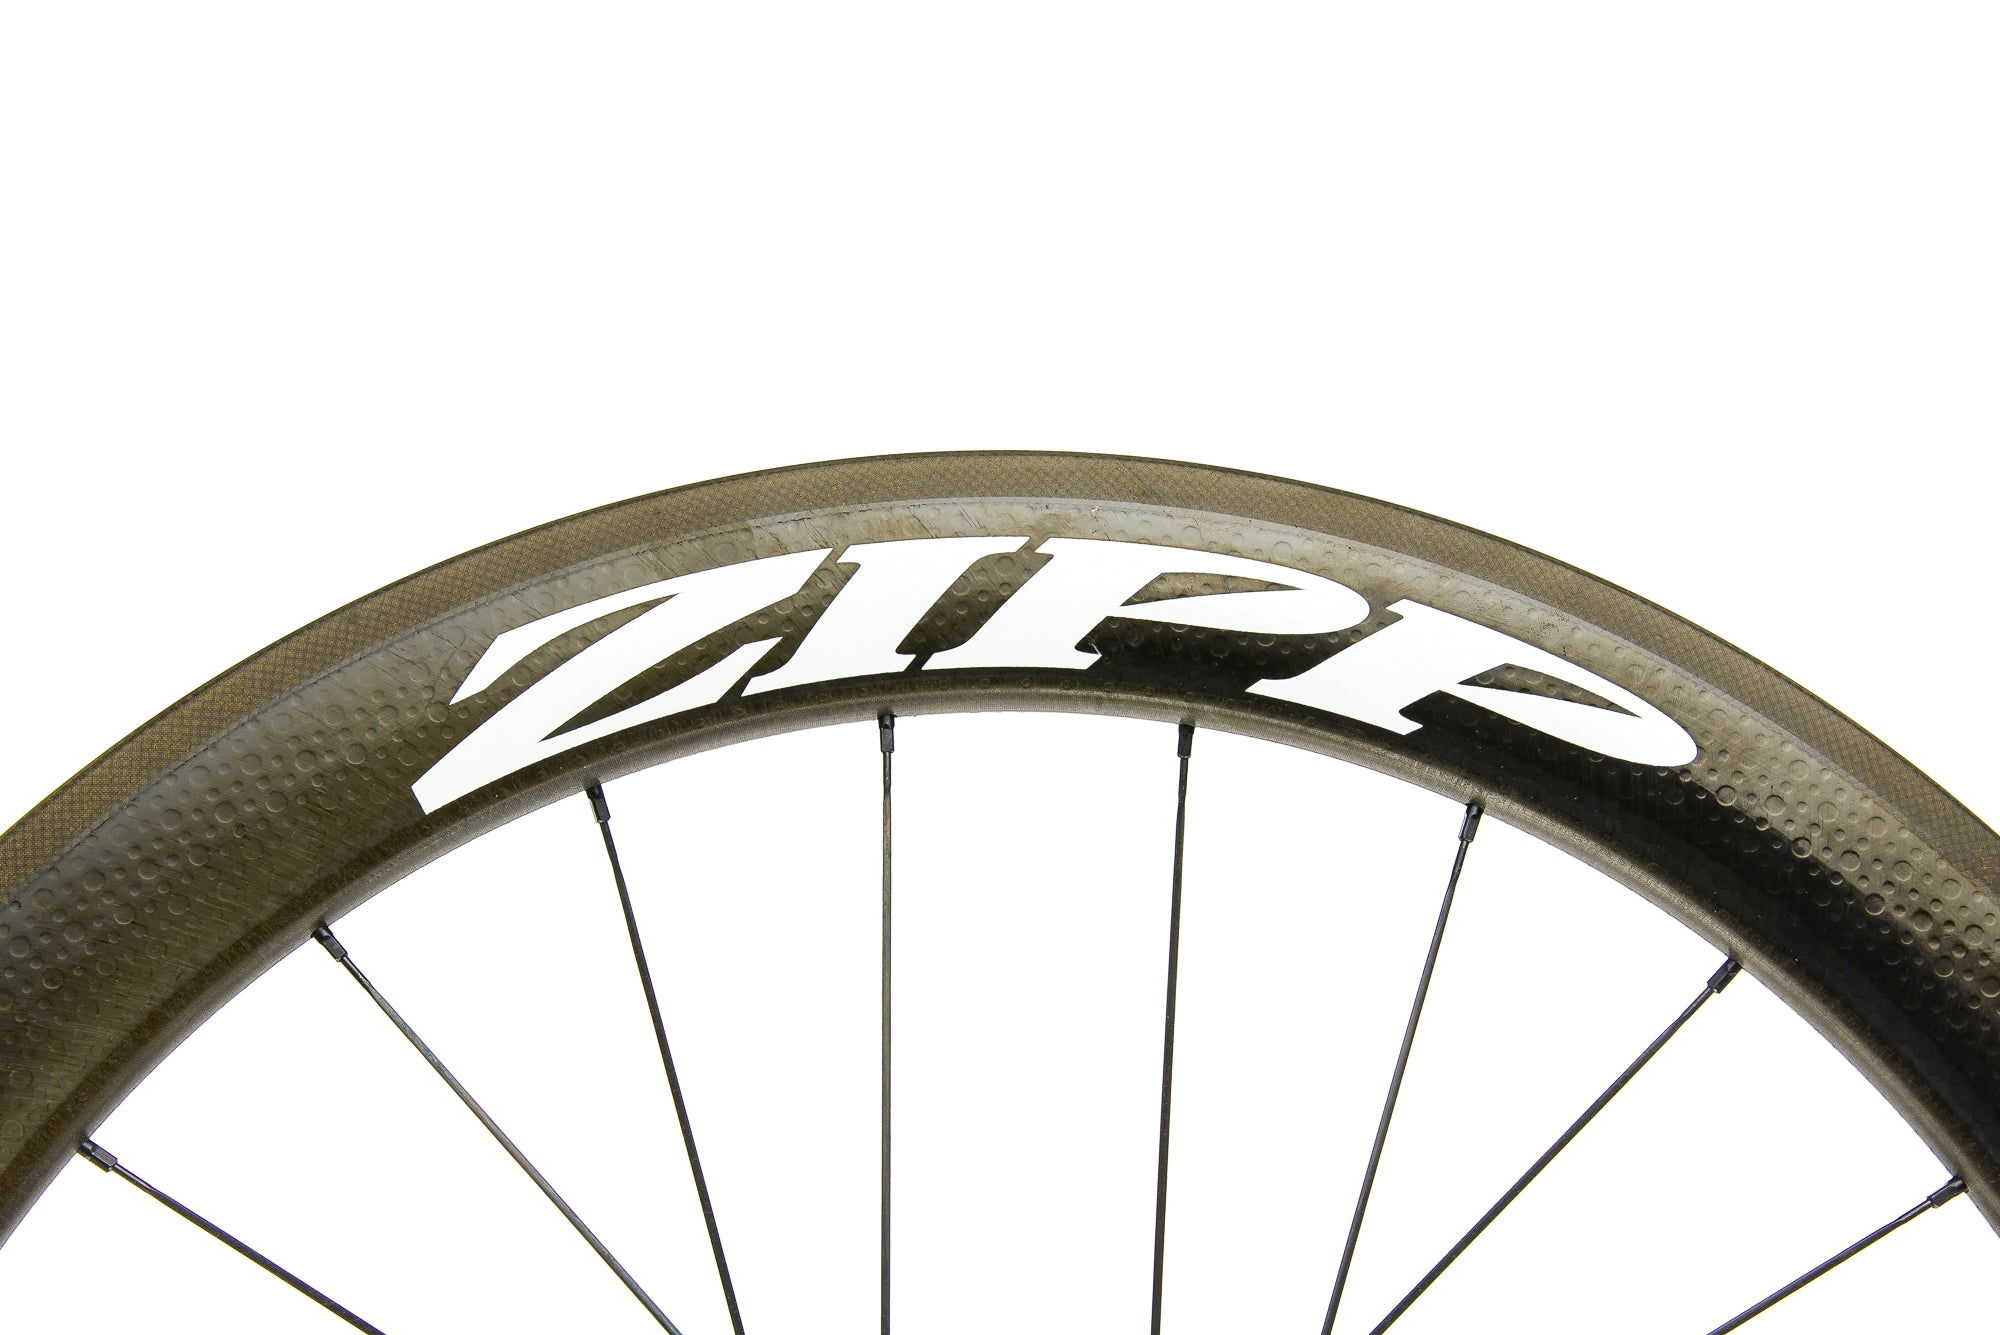 Zipp 404 Firecrest Carbon Clincher 700c Rear Wheel